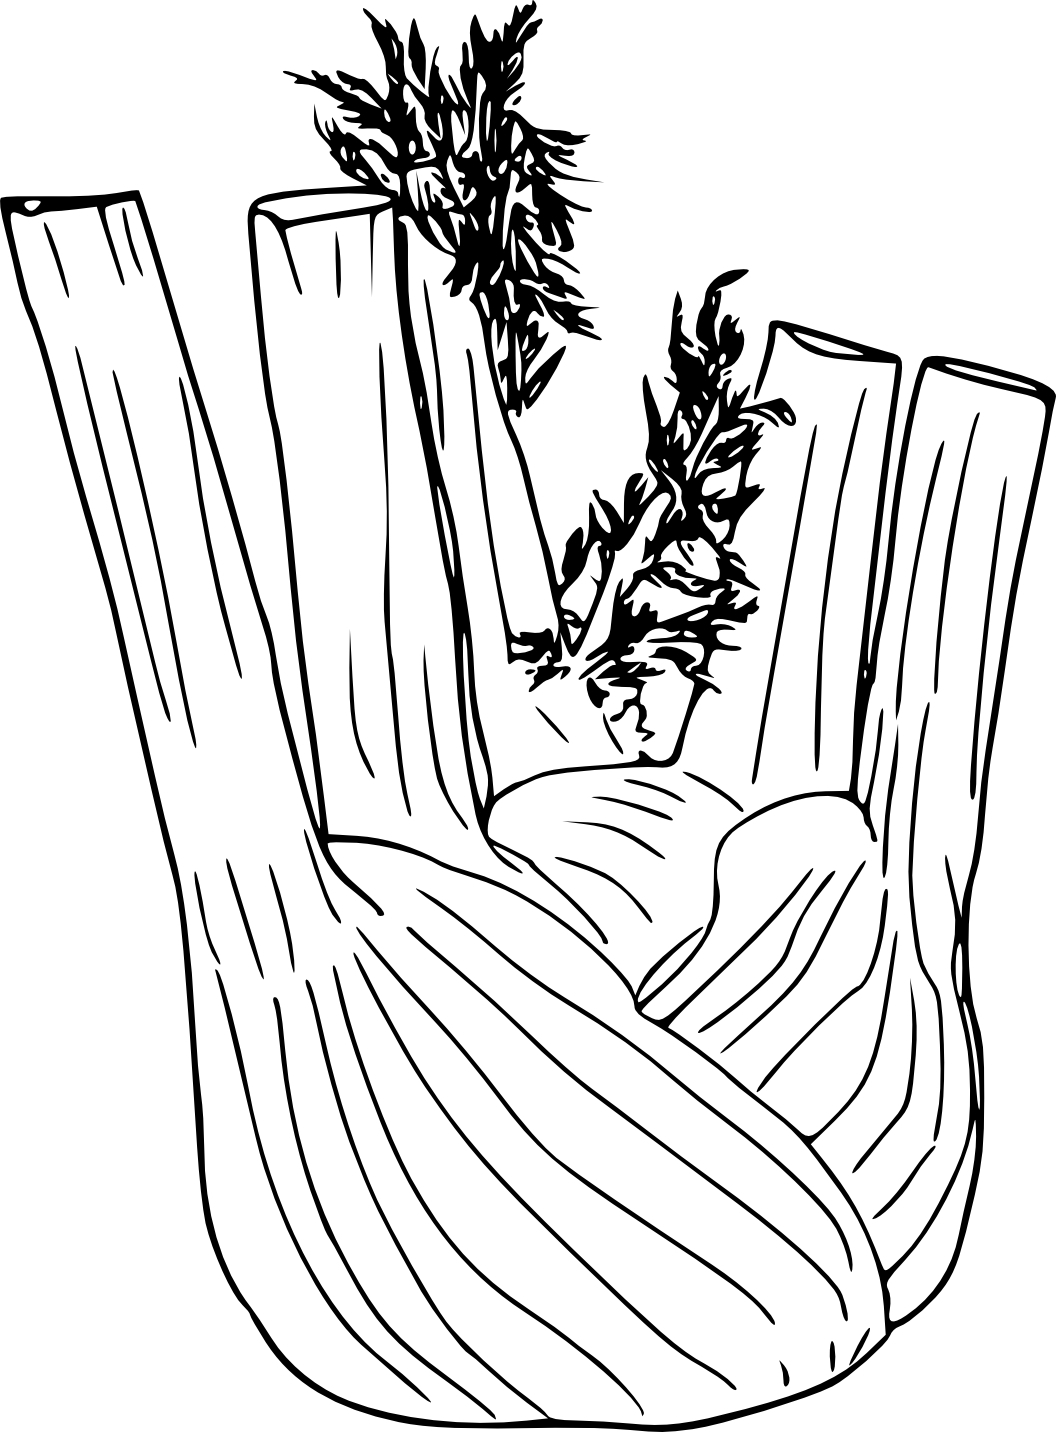 e coloring pages - fenouil